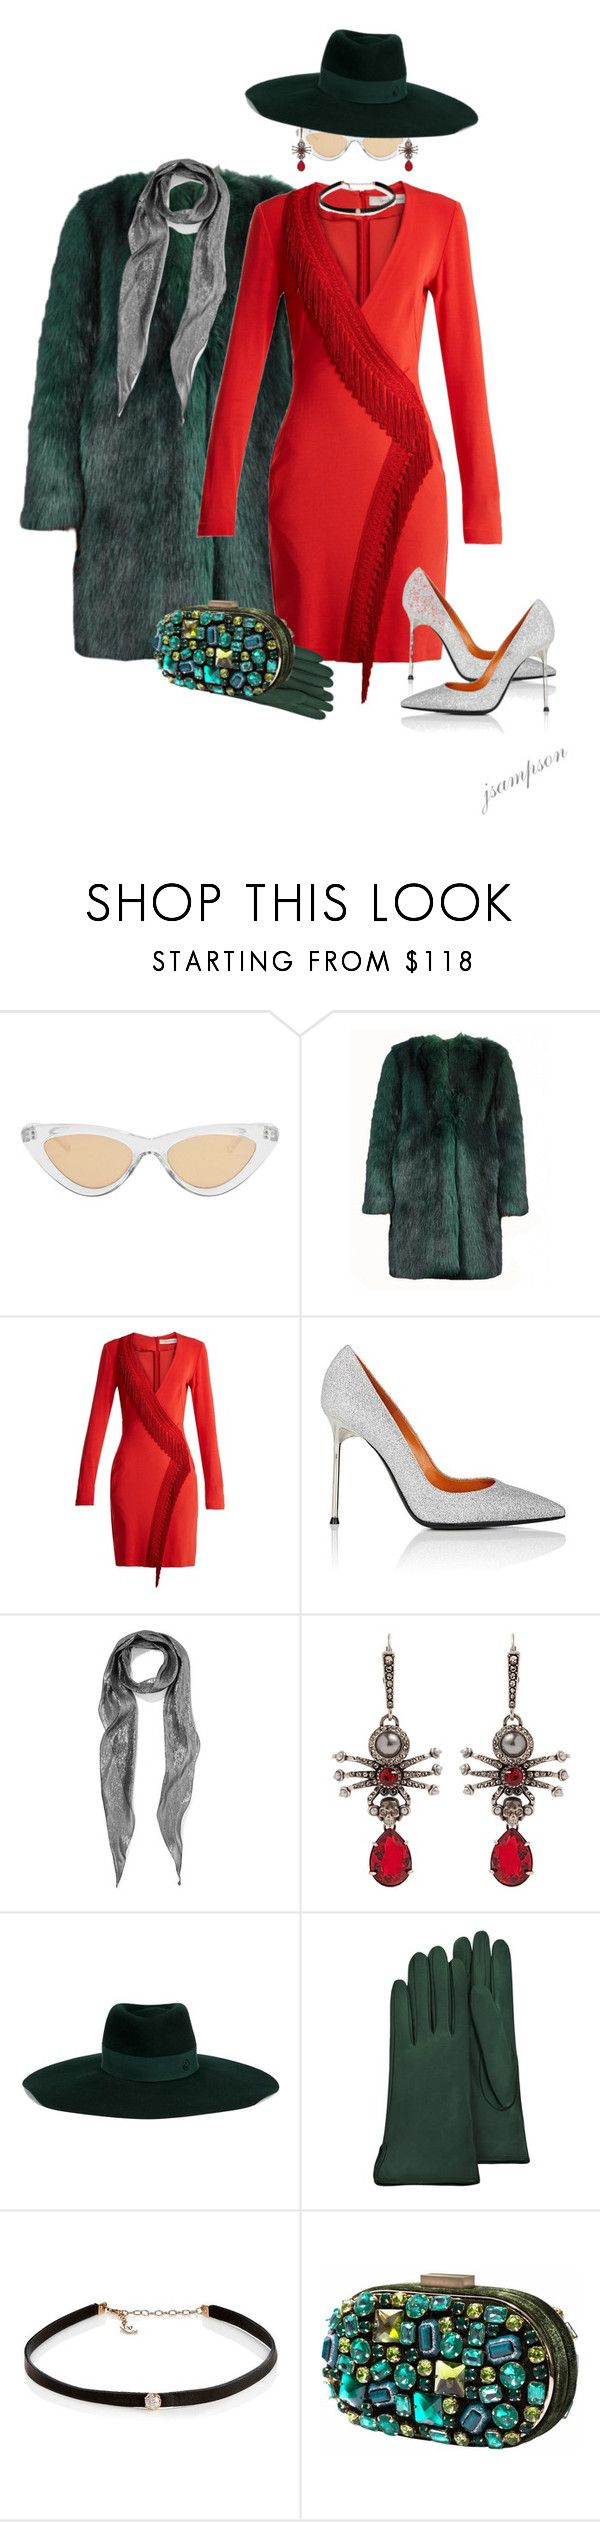 """""""Red & Green #1"""" by shadedlady ❤ liked on Polyvore featuring Le Specs Luxe, Dries Van Noten, Galvan, Walter De Silva, Yves Saint Laurent, Alexander McQueen, Maison Michel, Forzieri, Carbon & Hyde and Nissa Jewelry"""